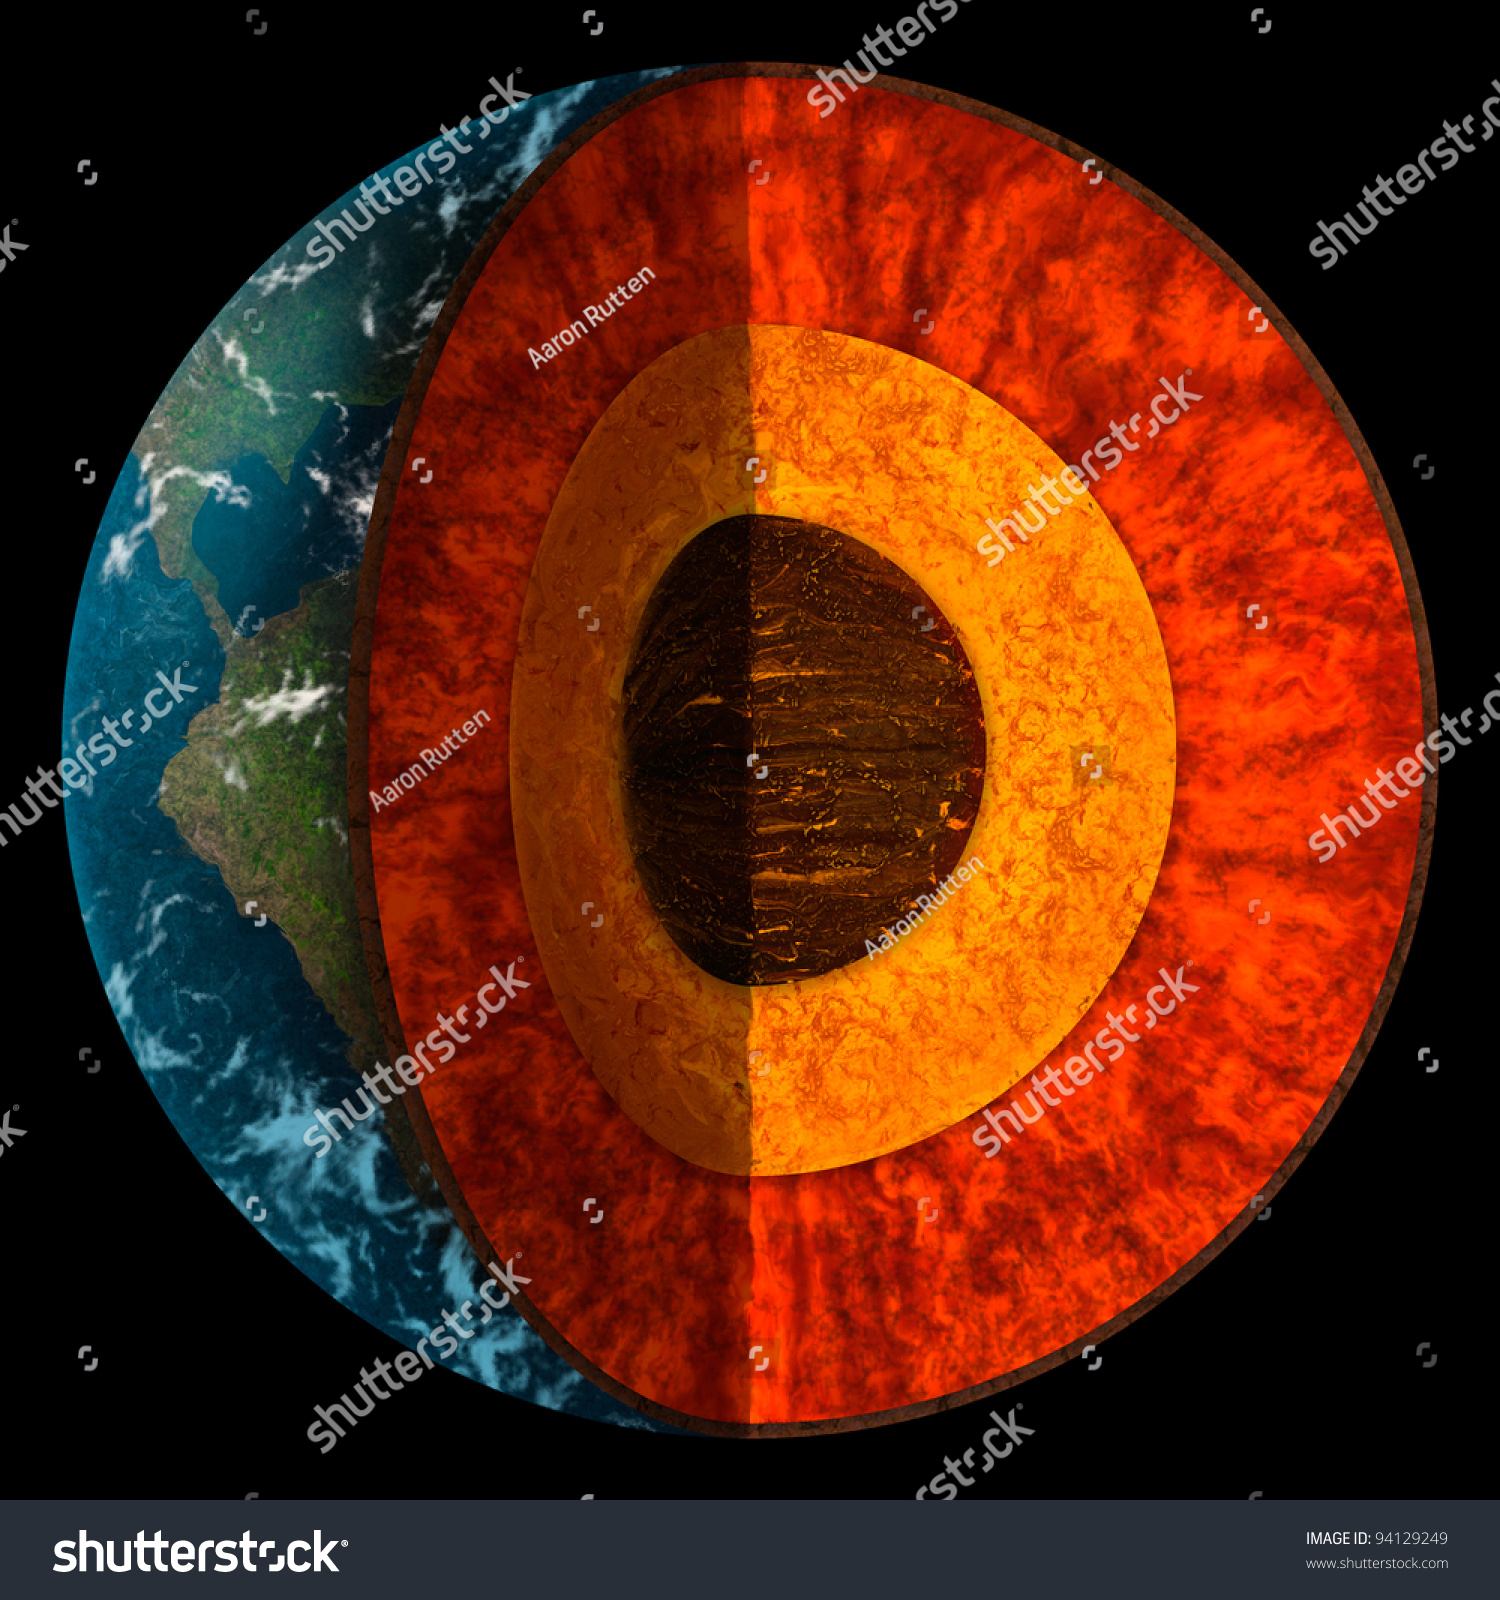 Digital Illustration Of A Cross Section Of Planet Earth